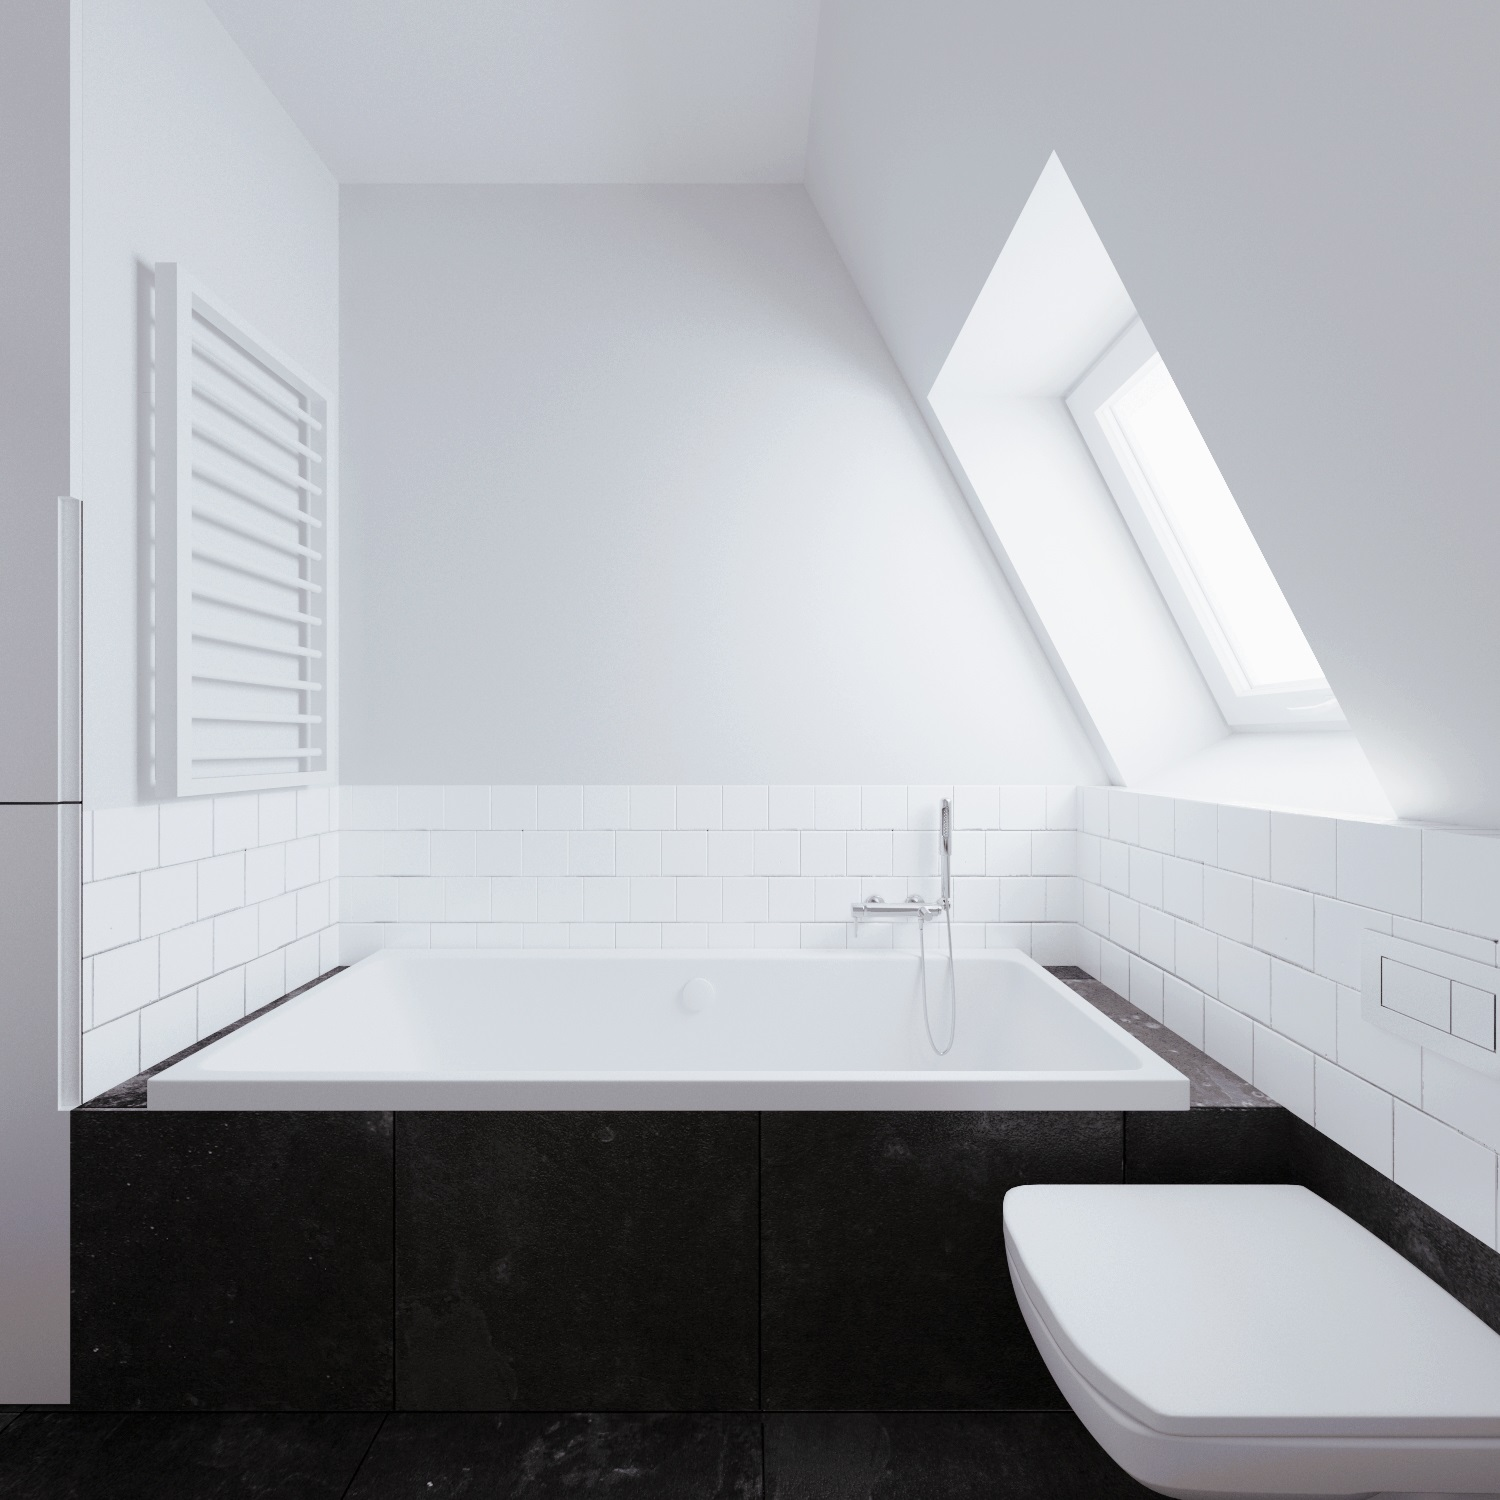 Deep Bathtub - Beautiful attic apartment with clever design features